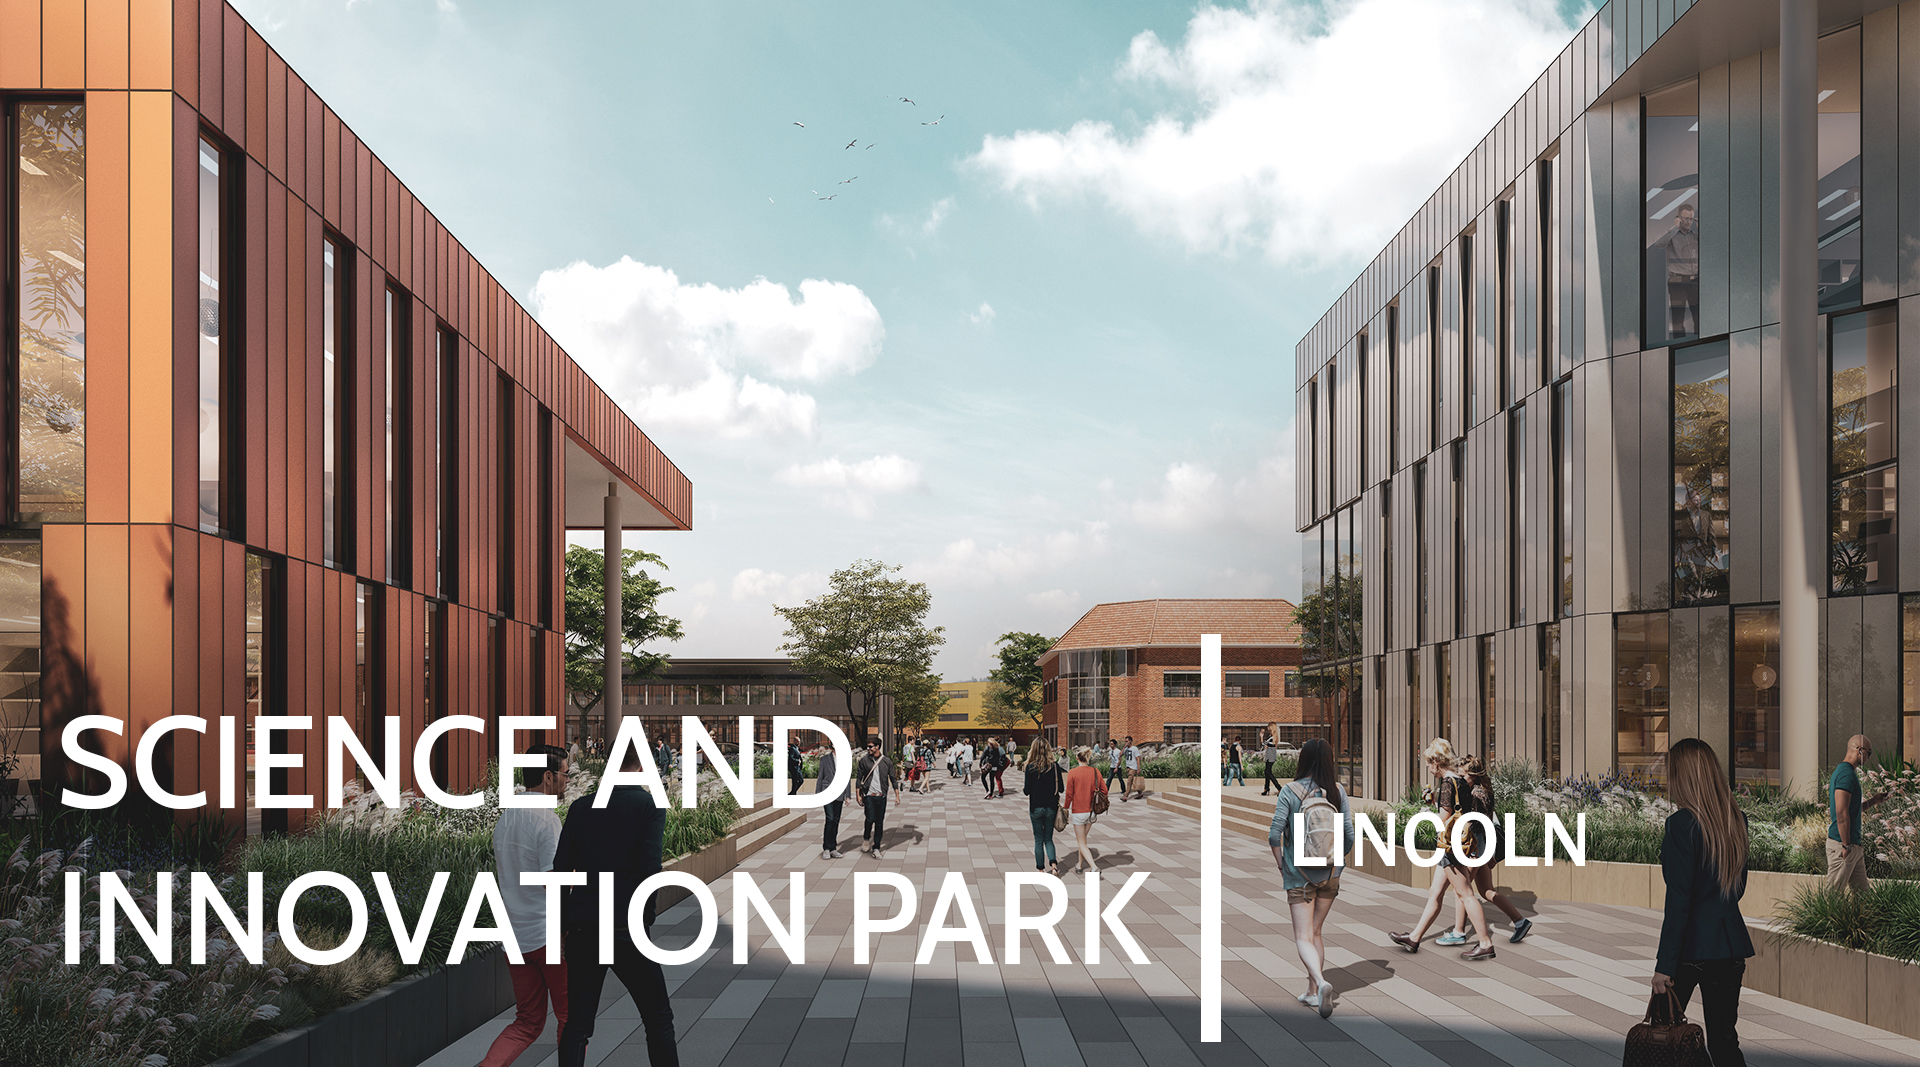 LINCOLN SCIENCE AND INNOVATION